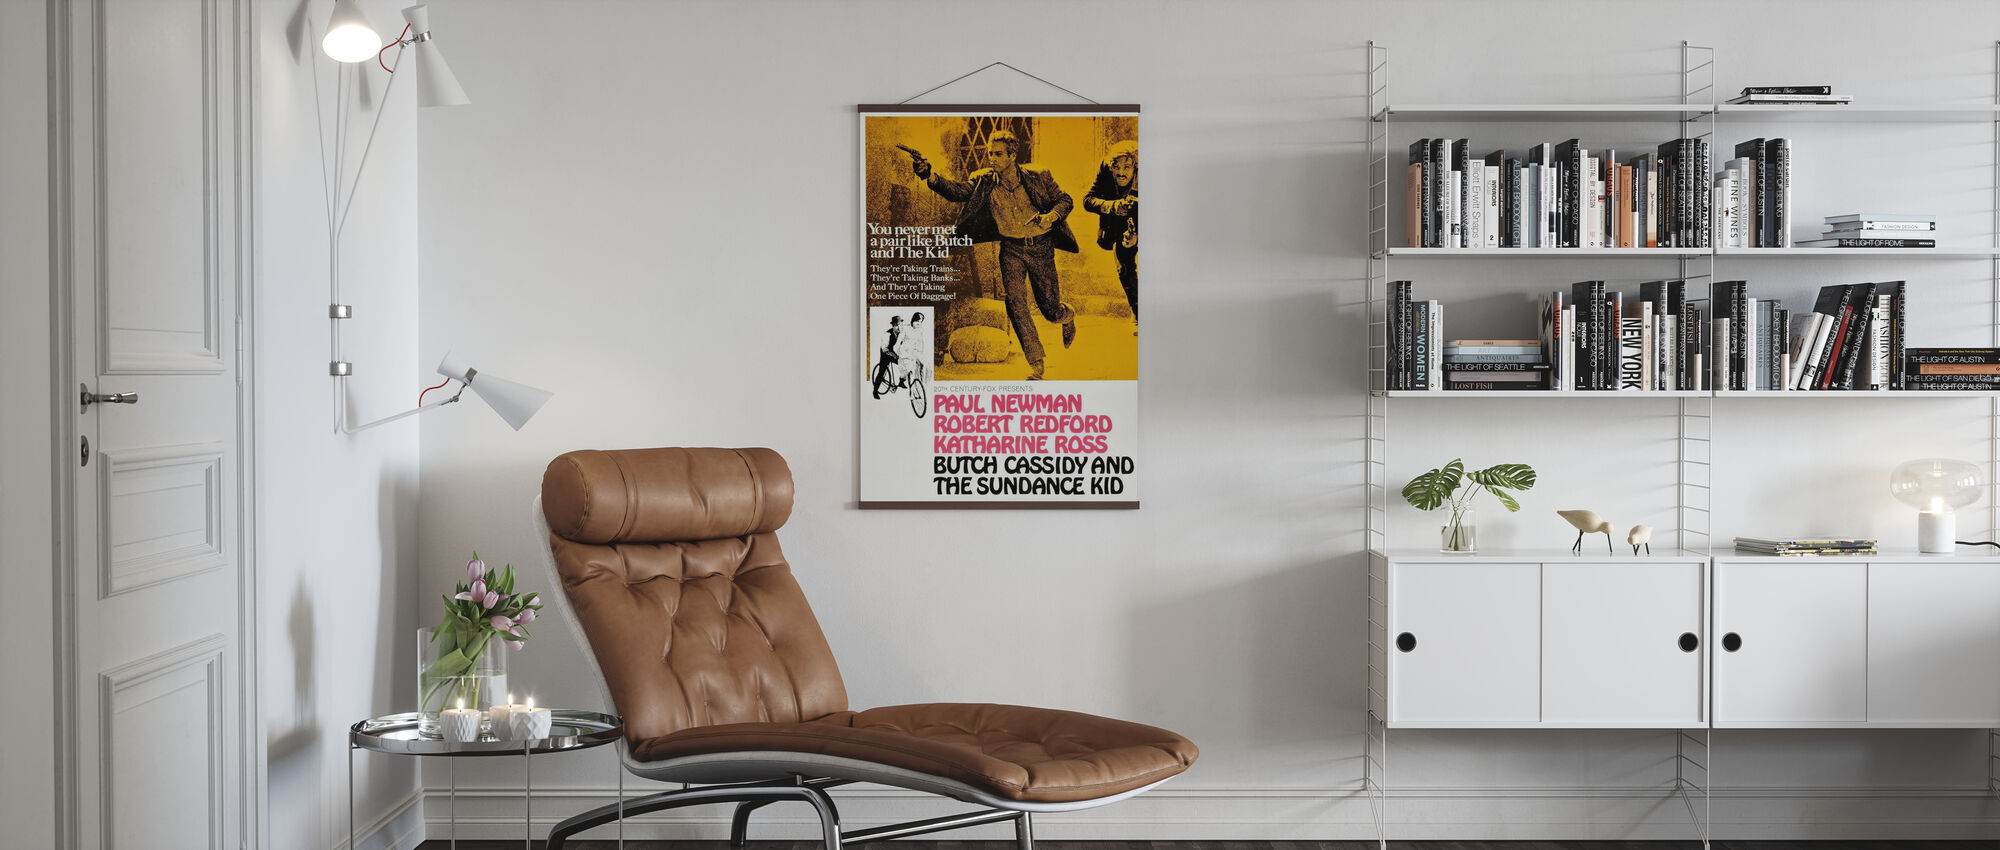 Butch Cassidy and the Sundance Kid - Poster - Living Room